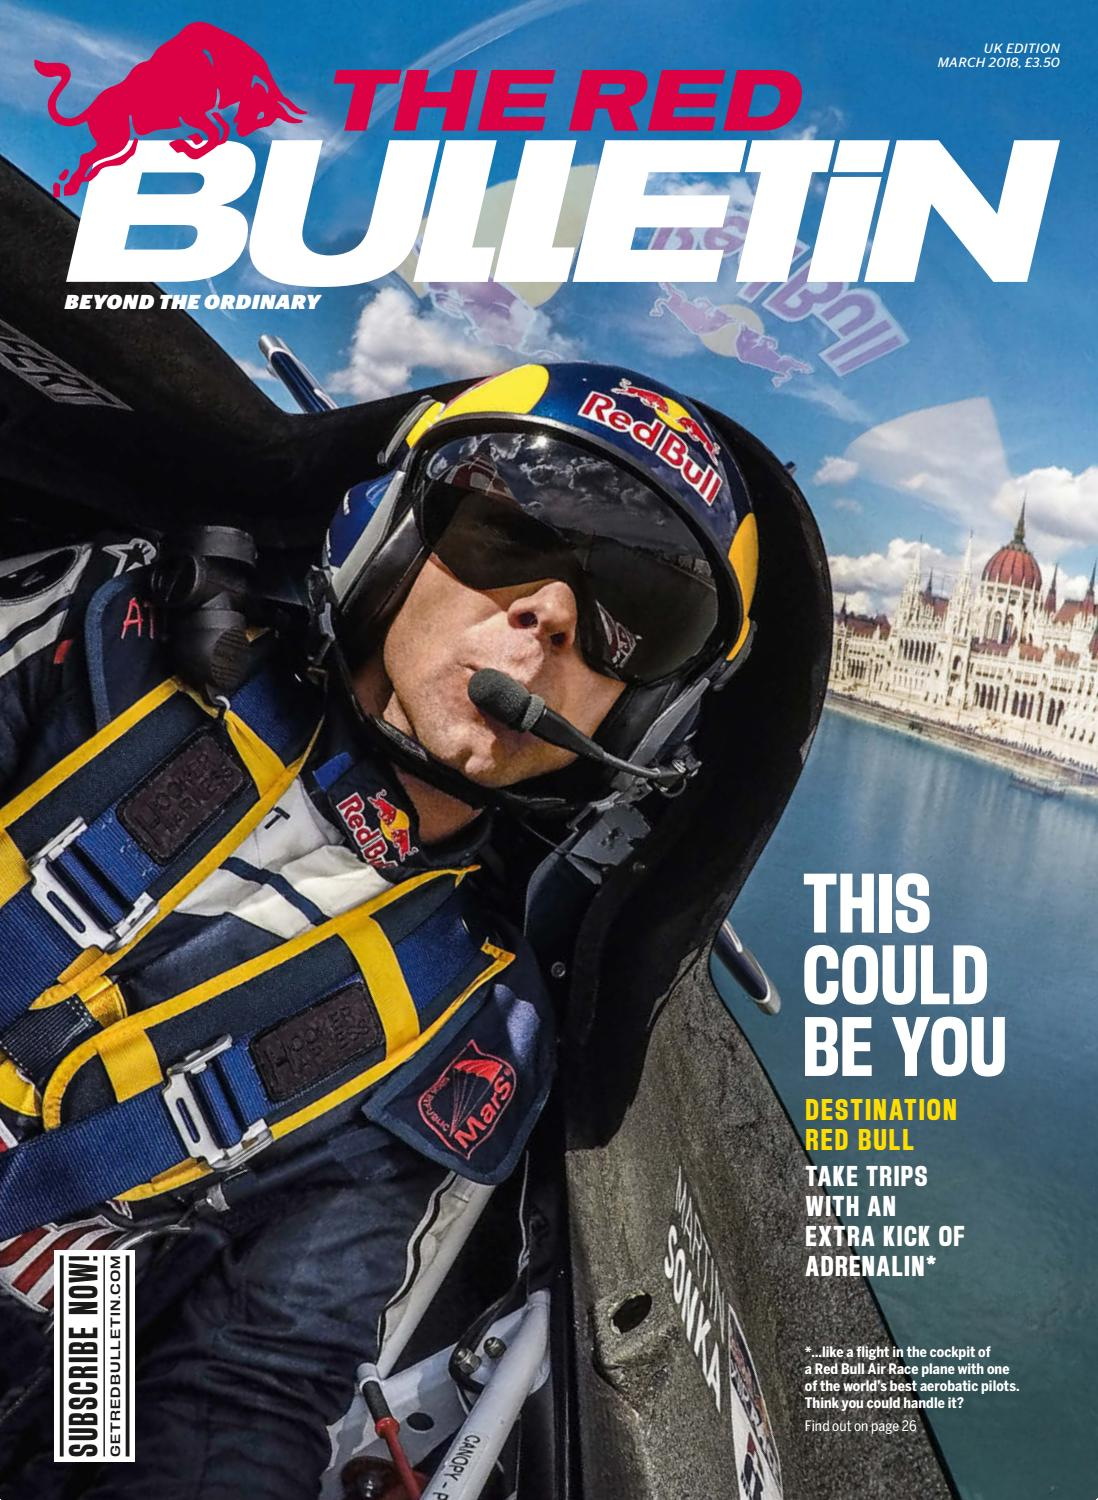 The Red Bulletin March 2018 - UK by Red Bull Media House - issuu